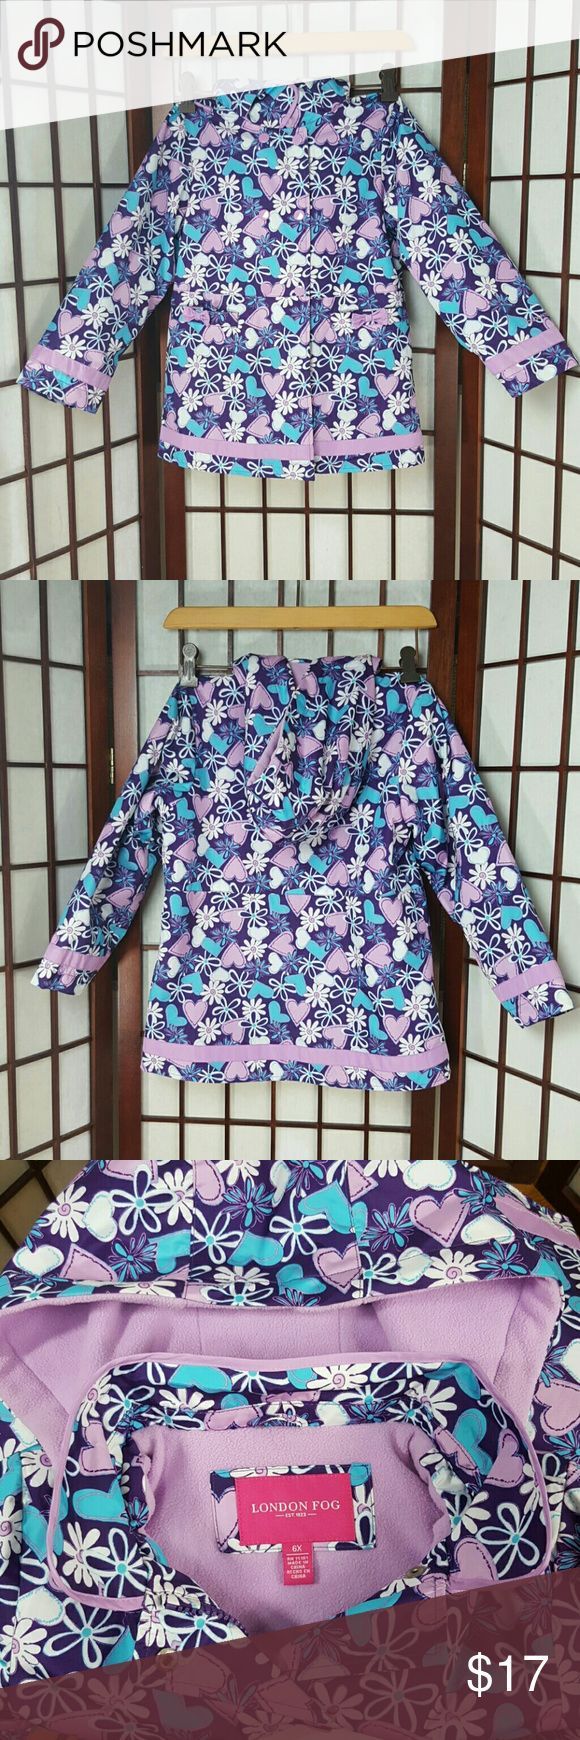 Girls LONDON FOG Floral Jacket Coat Size 6X *Pre-owned  (no stains & tears)  gently worn  *London fog size 6x *Hoddie Jacket and Coat, Floral, buttons and zip up front, long sleeves, 2 pockets  *Multicolor ( purple, blue, white, etc) London Fog Jackets & Coats